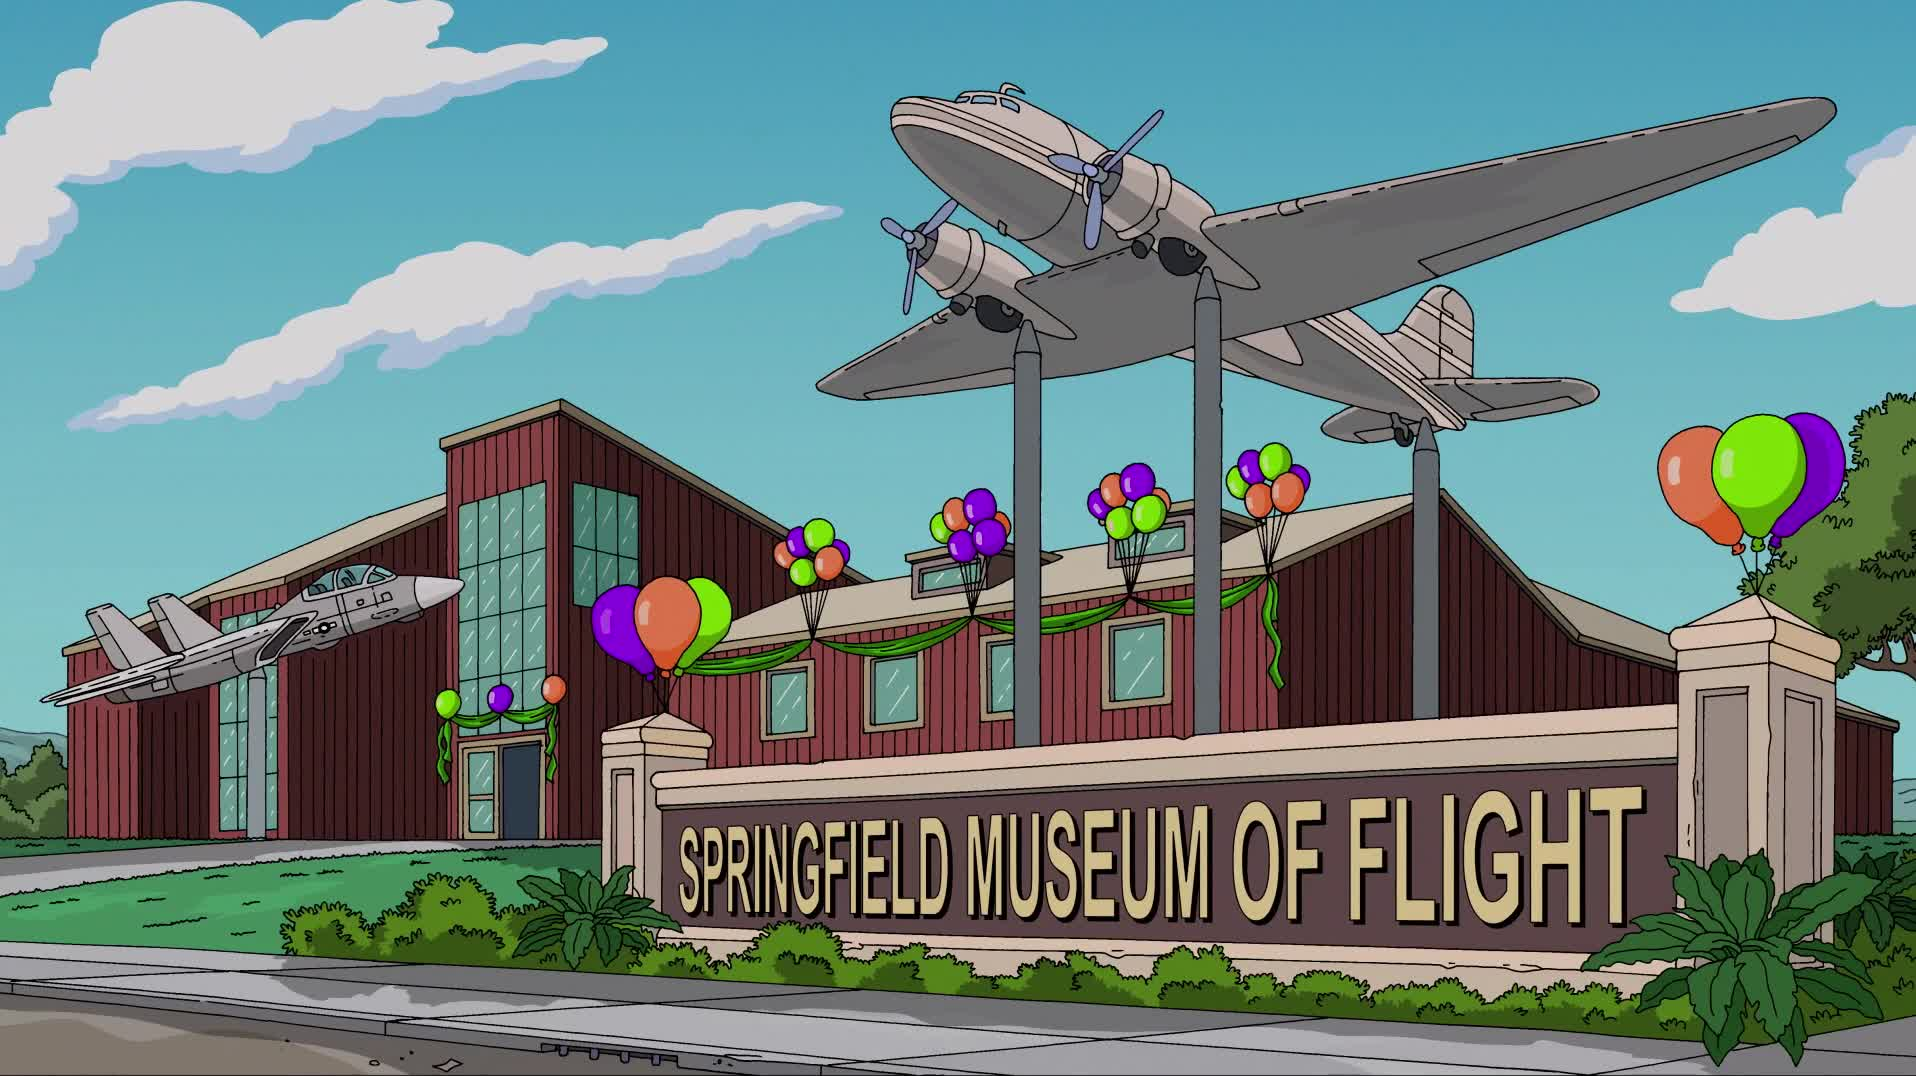 Springfield Museum of Flight